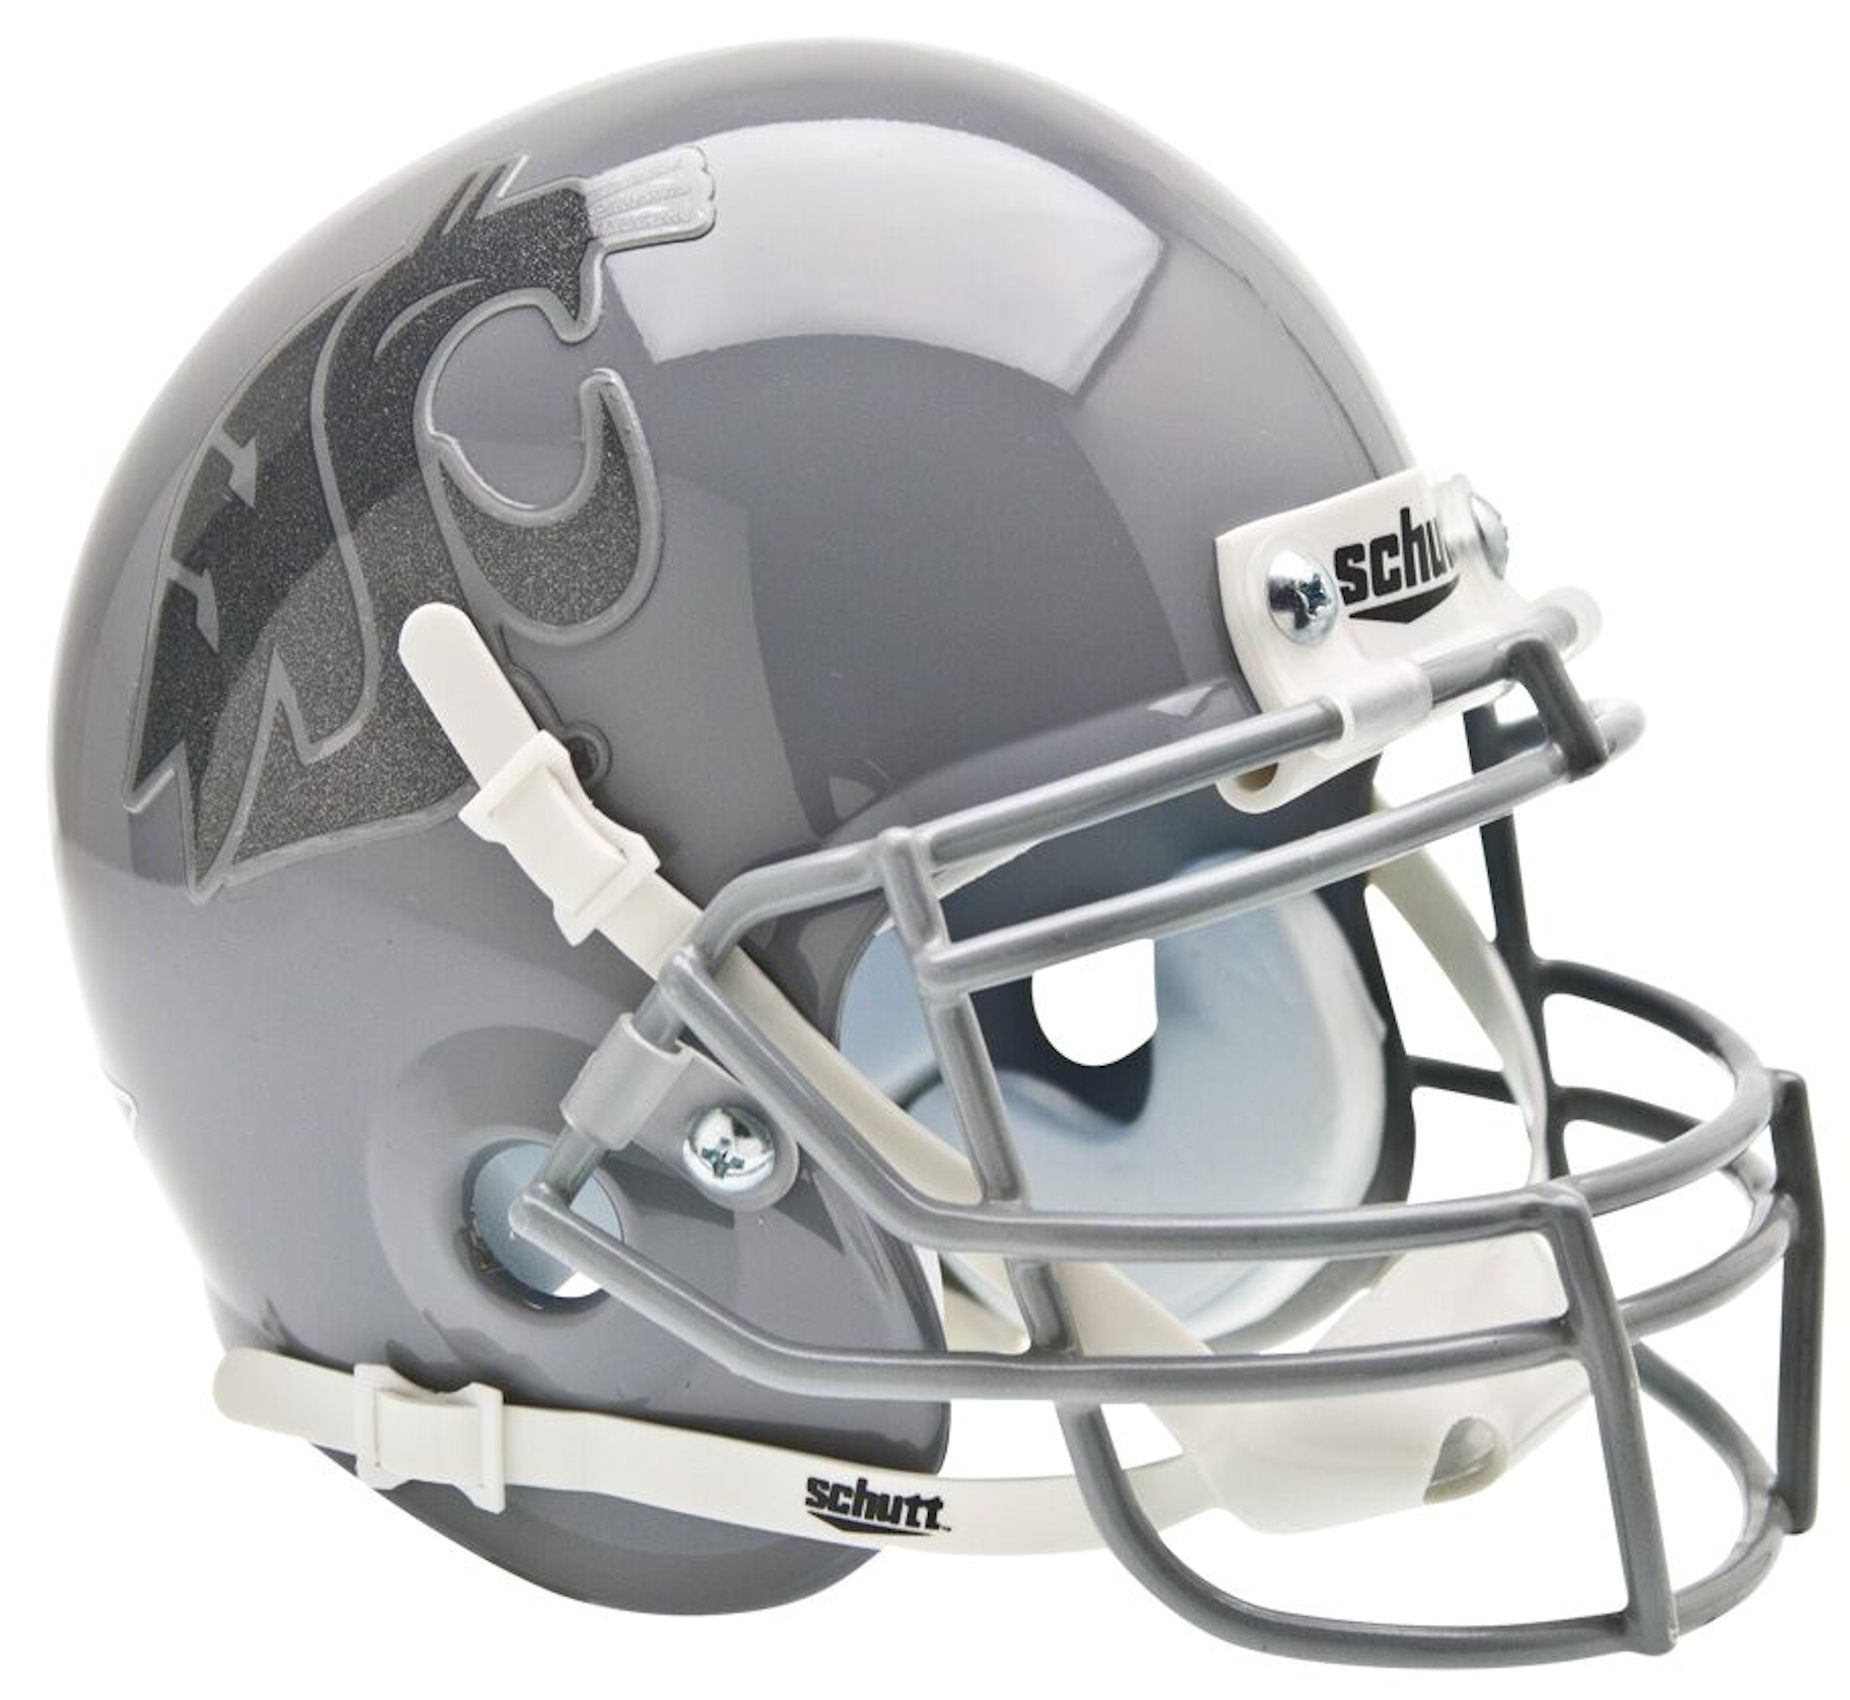 Washington State Cougars Mini XP Authentic Helmet Schutt <B>Gray/Gray</B>